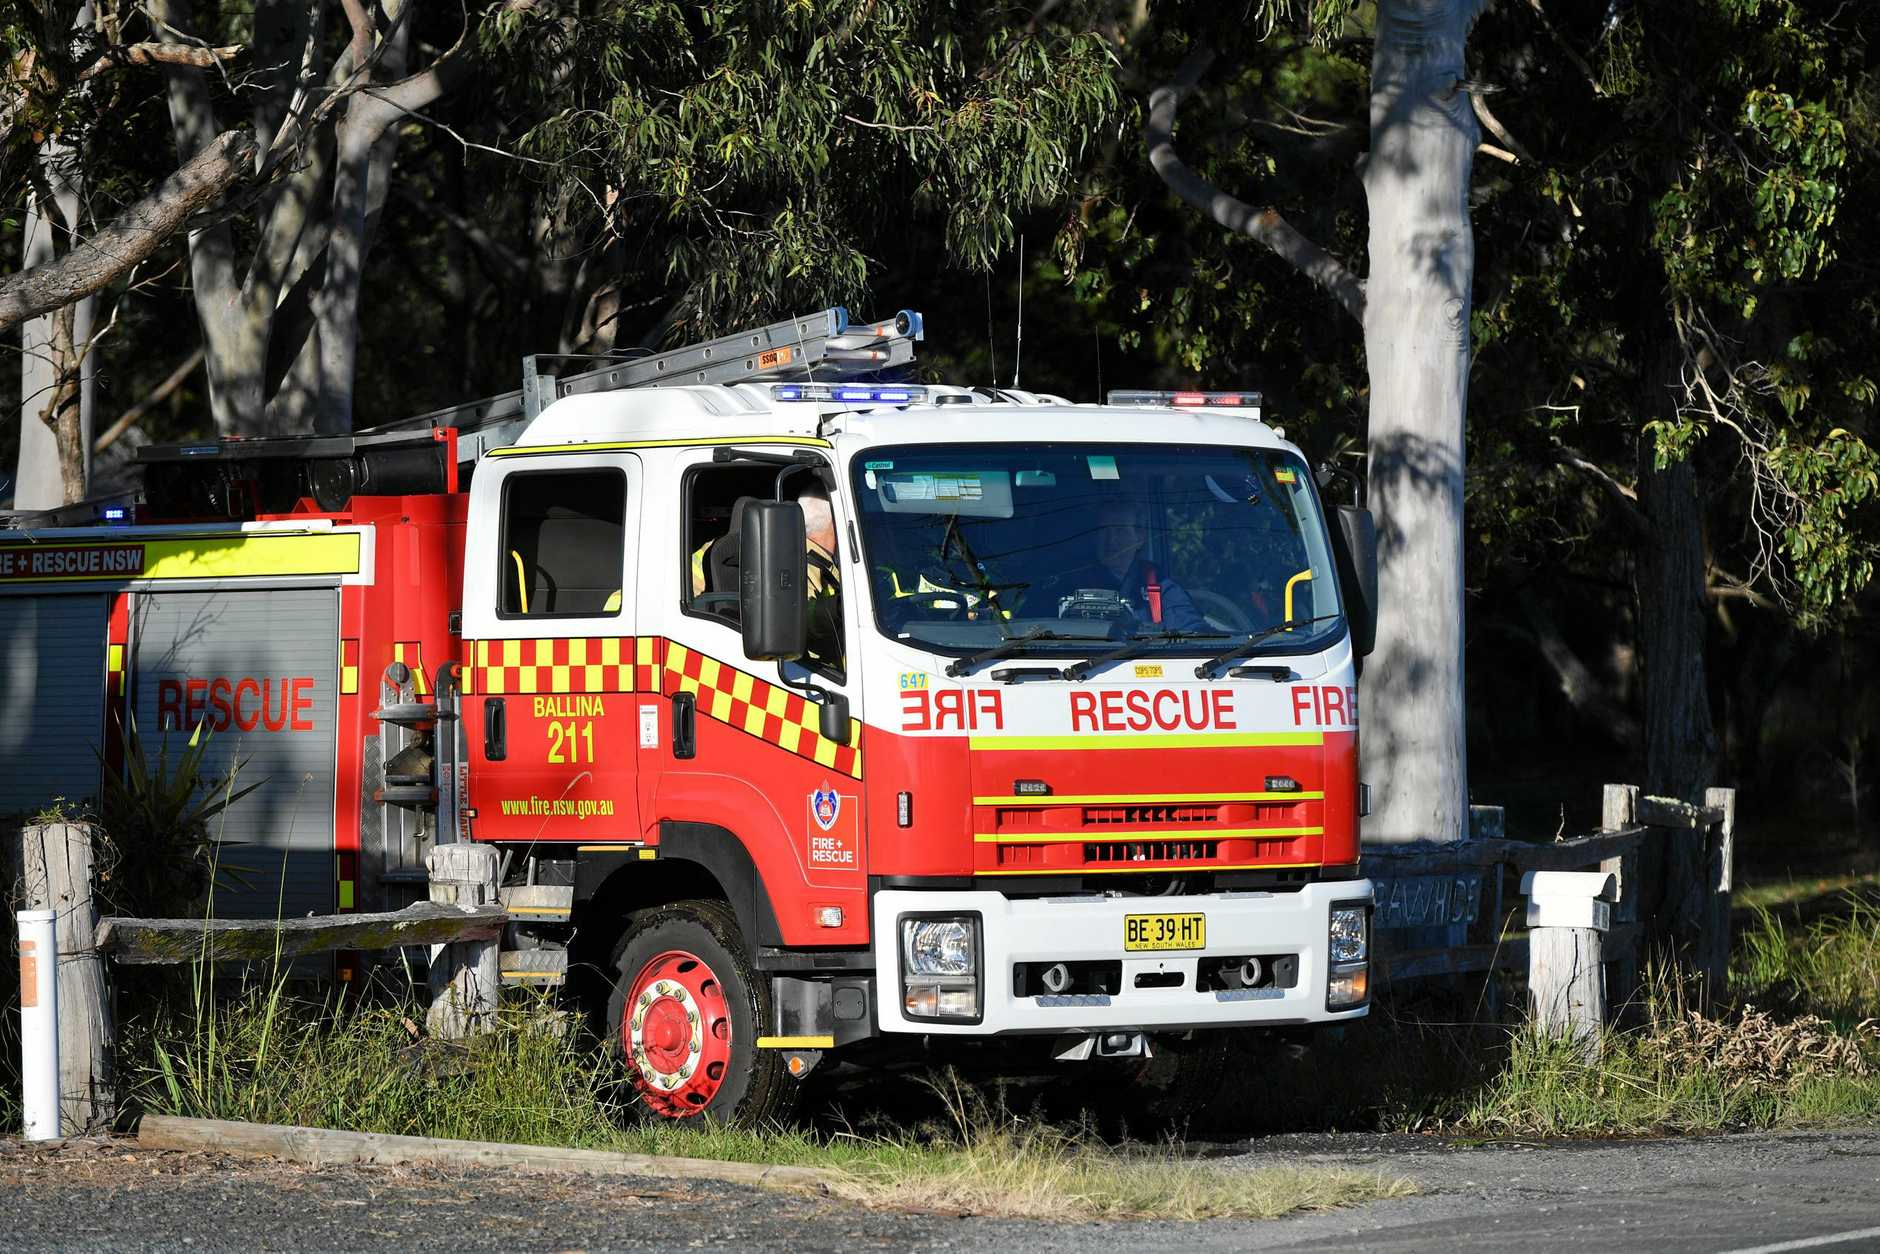 Emergency services were called to a house on Ross Lane in Lennox Head.